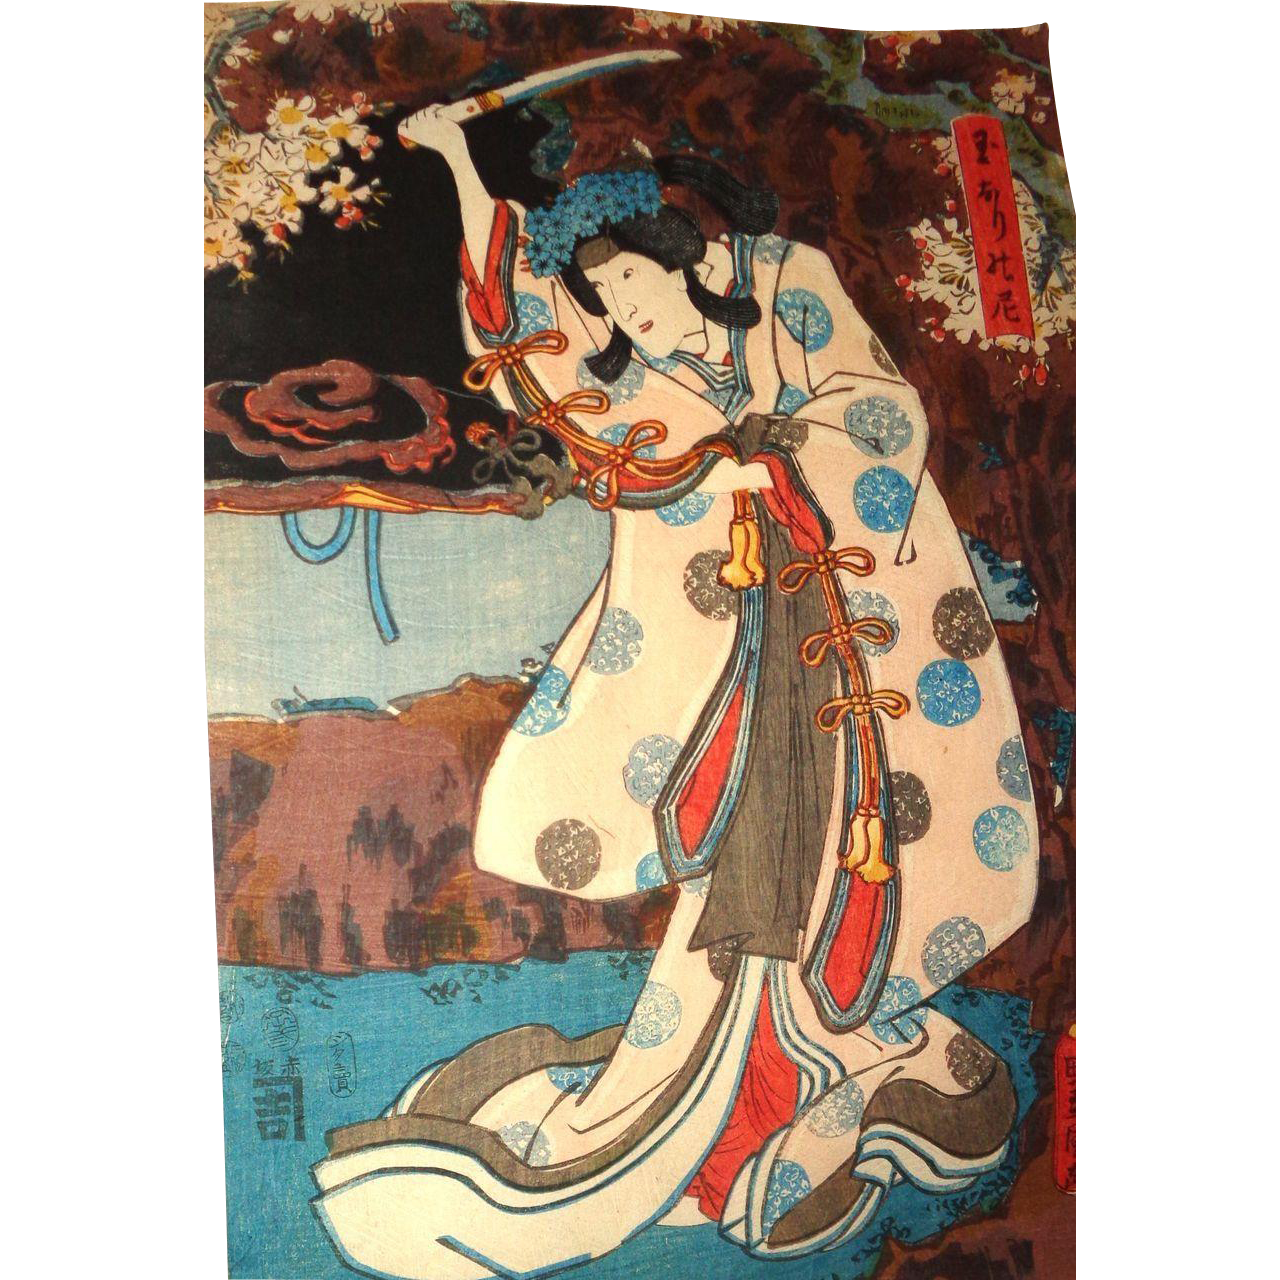 KUNISADA (Toyokuni III) - Color Woodblock Print With Actor Portrayal, circa 1852